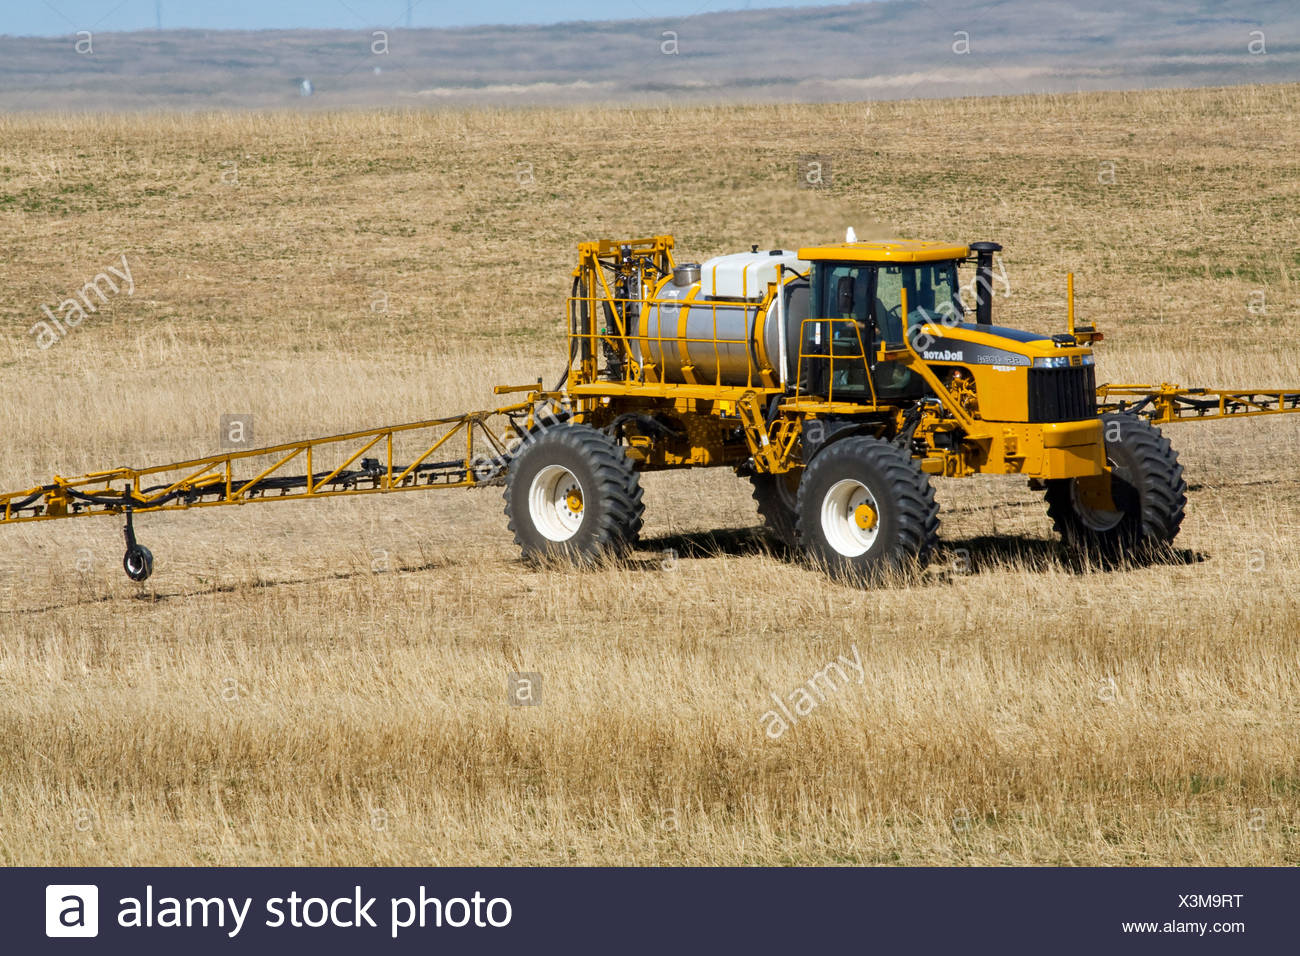 A RoGator applies herbicide to a dryland grain field in Spring prior to planting a new grain crop / Alberta, Canada. - Stock Image